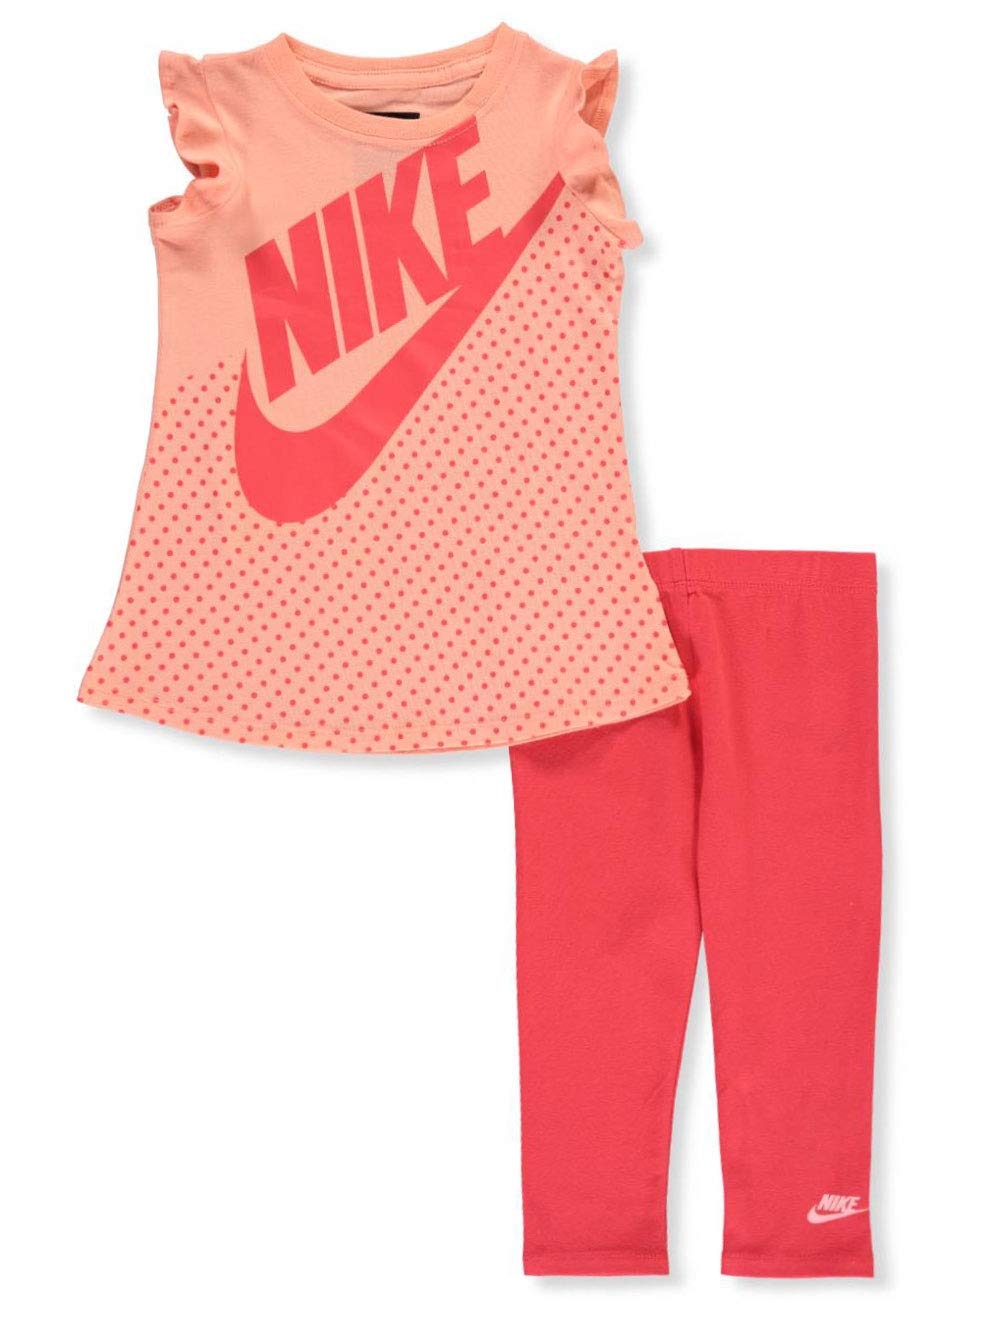 Nike Baby Girls' 2-Piece Leggings Set Outfit - Ember Glow, 12 Months by Nike